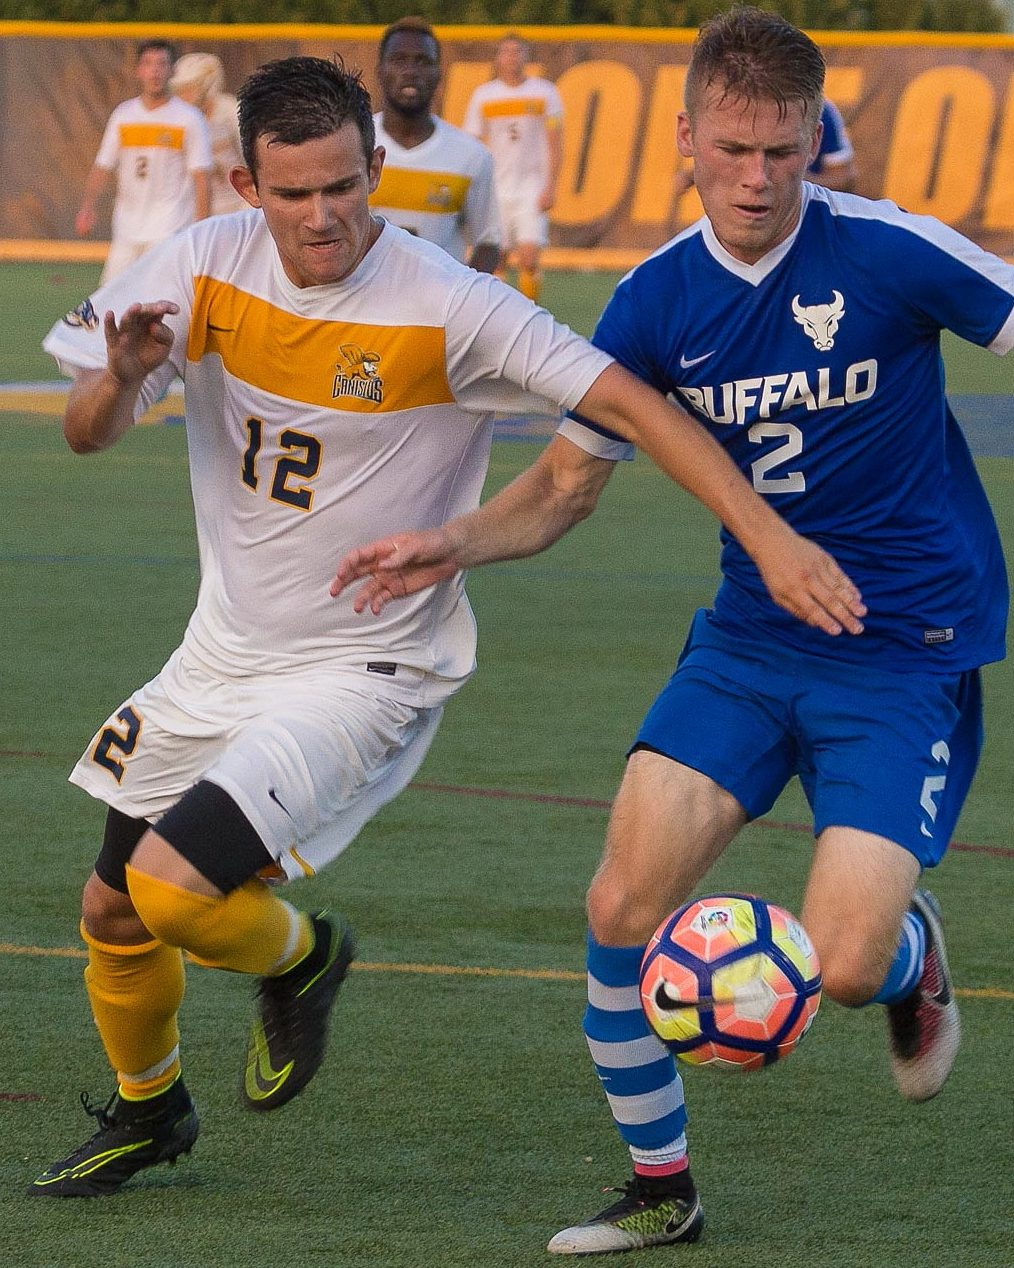 Grand Island graduate Troy Brady, left, played for Canisius before an ACL tear prematurely ended his season. (Don Nieman/Special to The News)